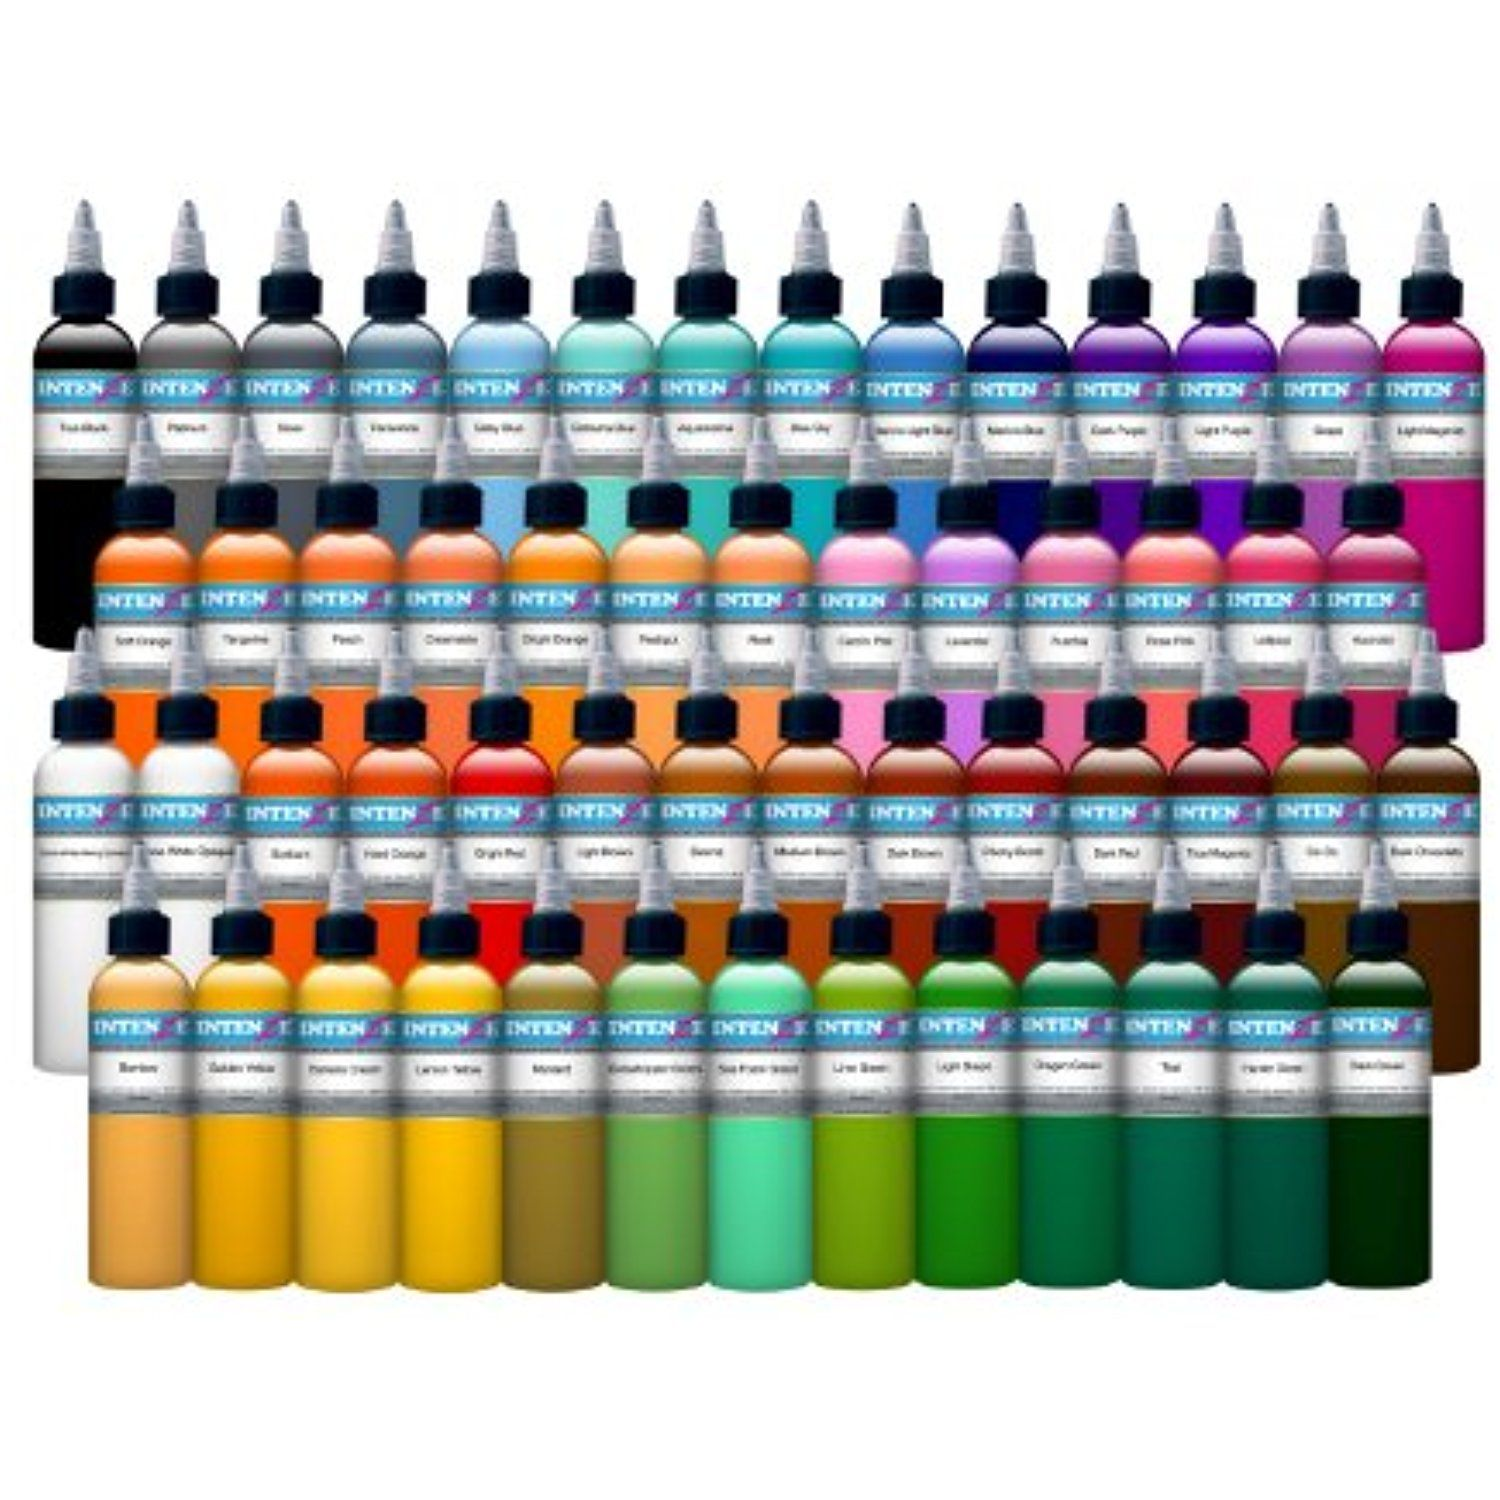 Intenze Color Tattoo Ink Sets 1 Oz Intenze Color Lining Ink Series You Can Find More Details By Visiting The Image Tattoo Ink Sets Ink Tattoo Color Tattoo